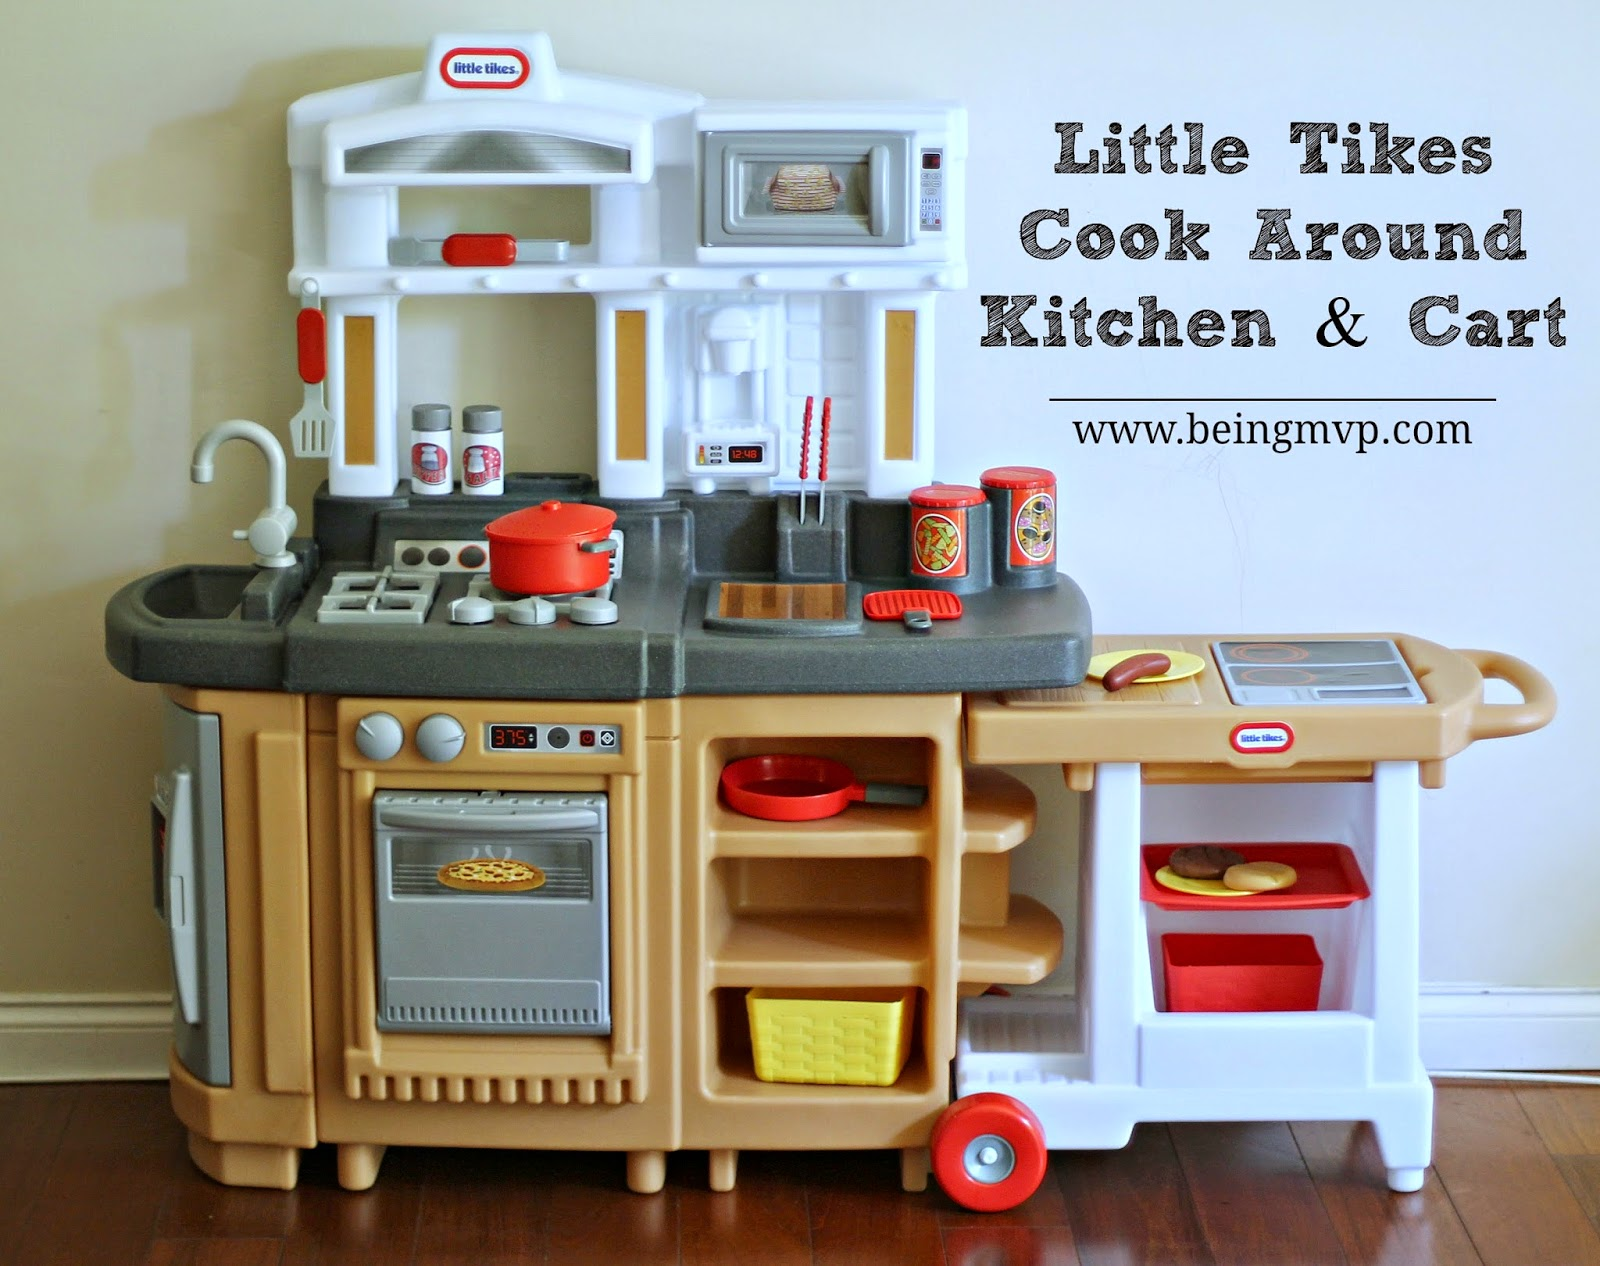 Being MVP: Little Tikes Cook Around Kitchen & Cart™